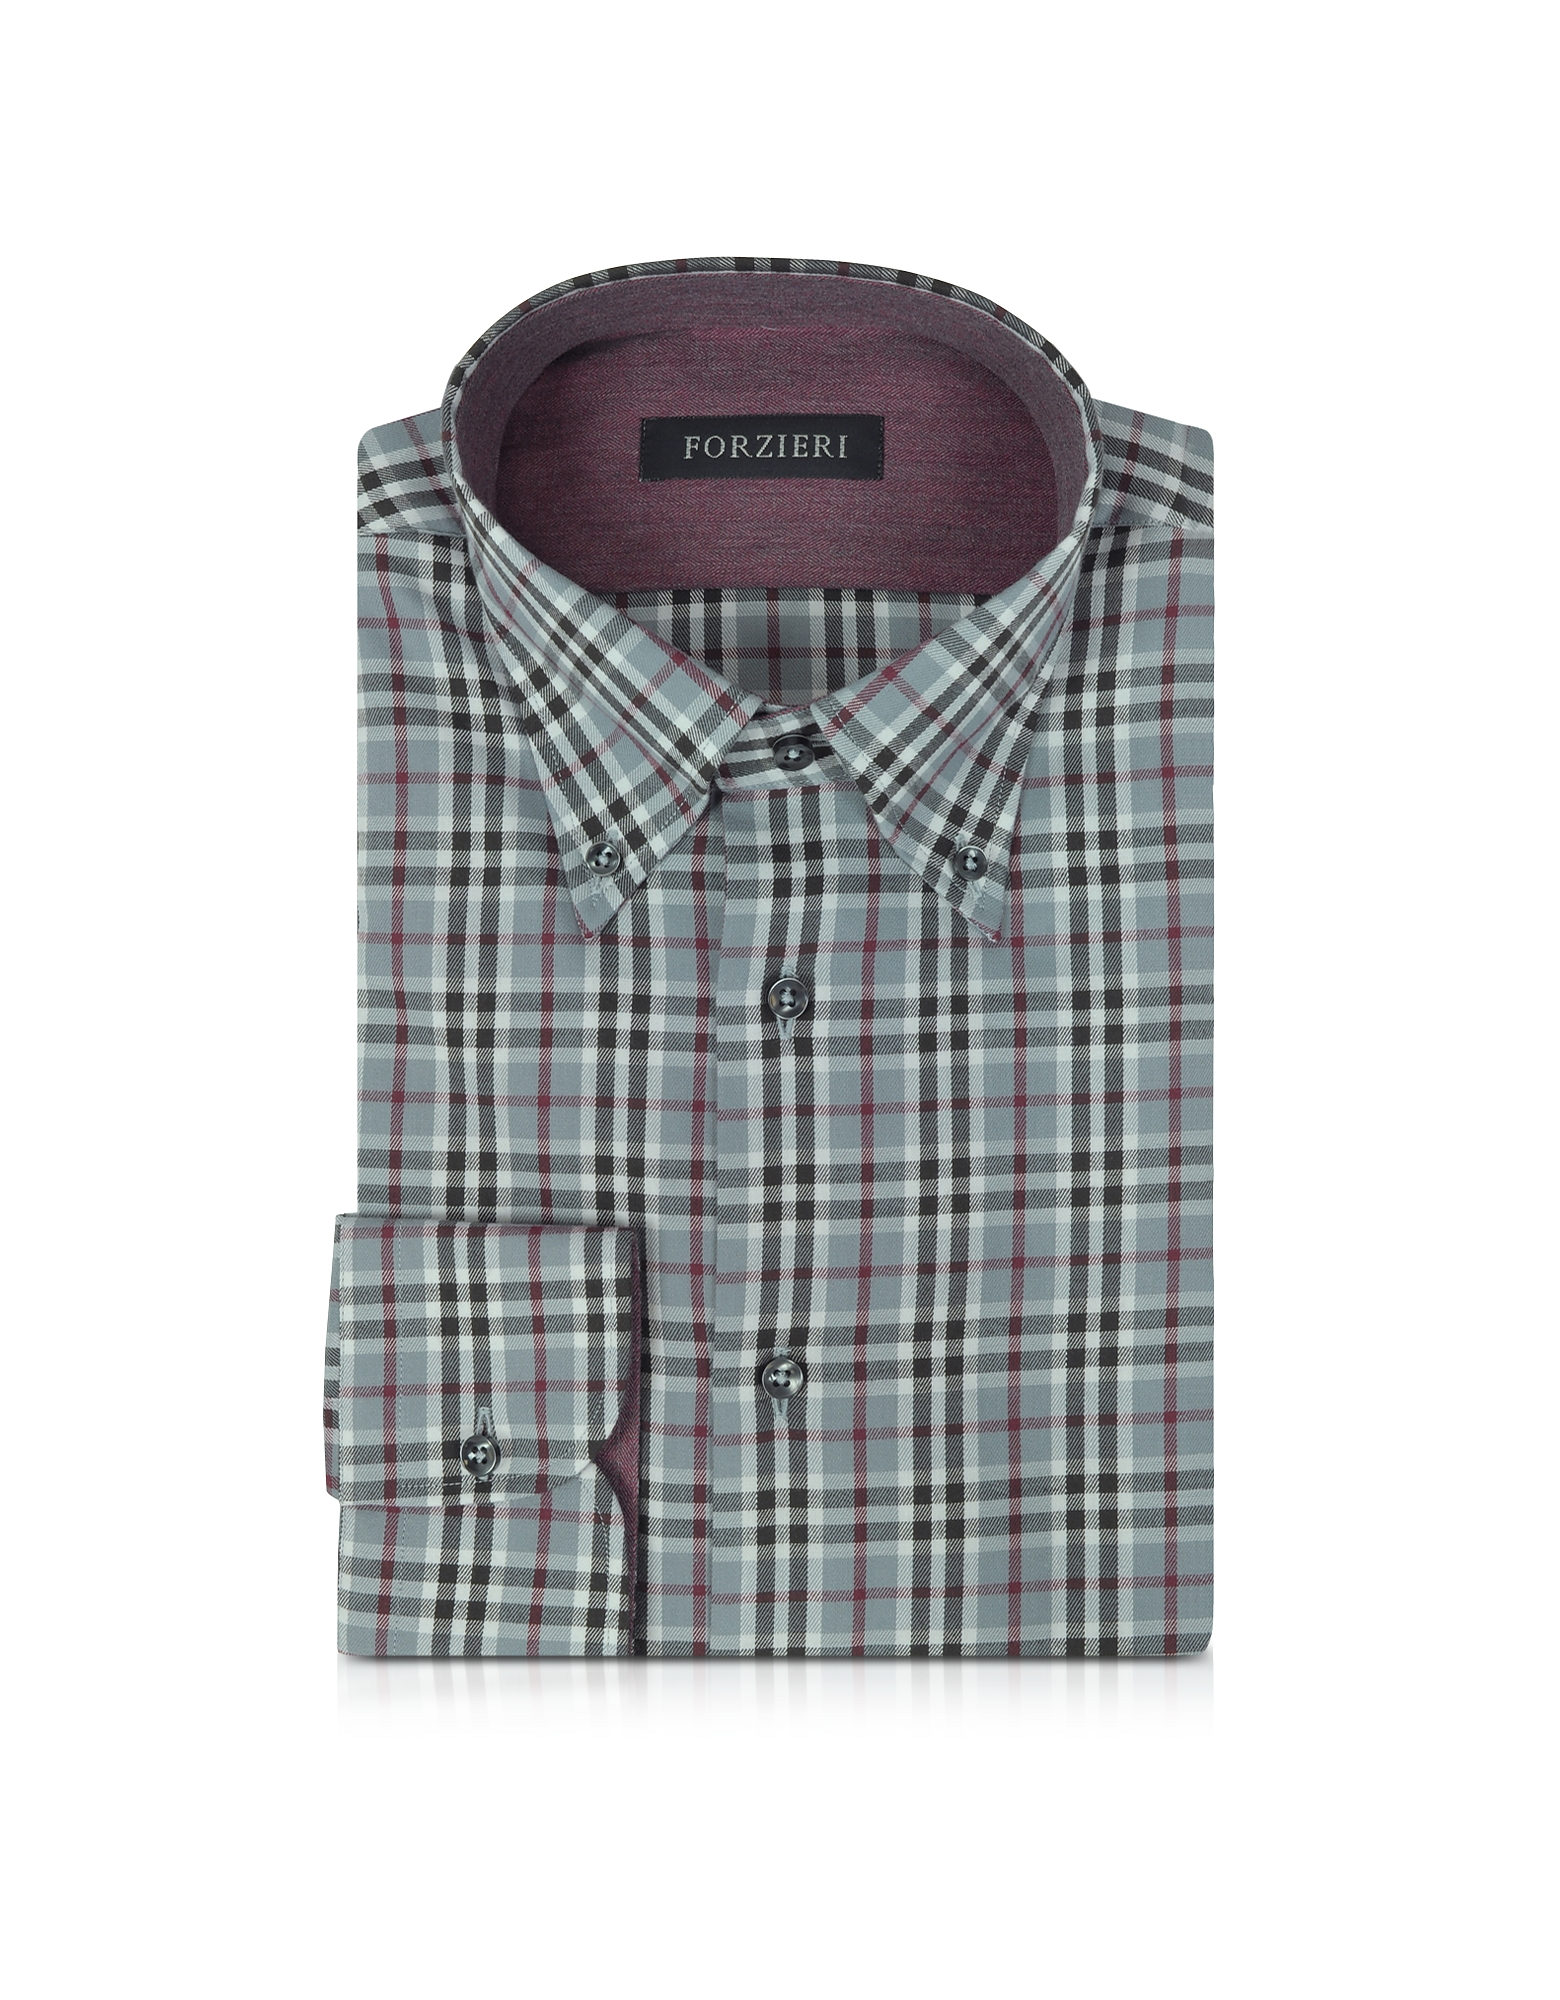 Gray & Burgundy Plaid Cotton Slim Fit Men's Shirt